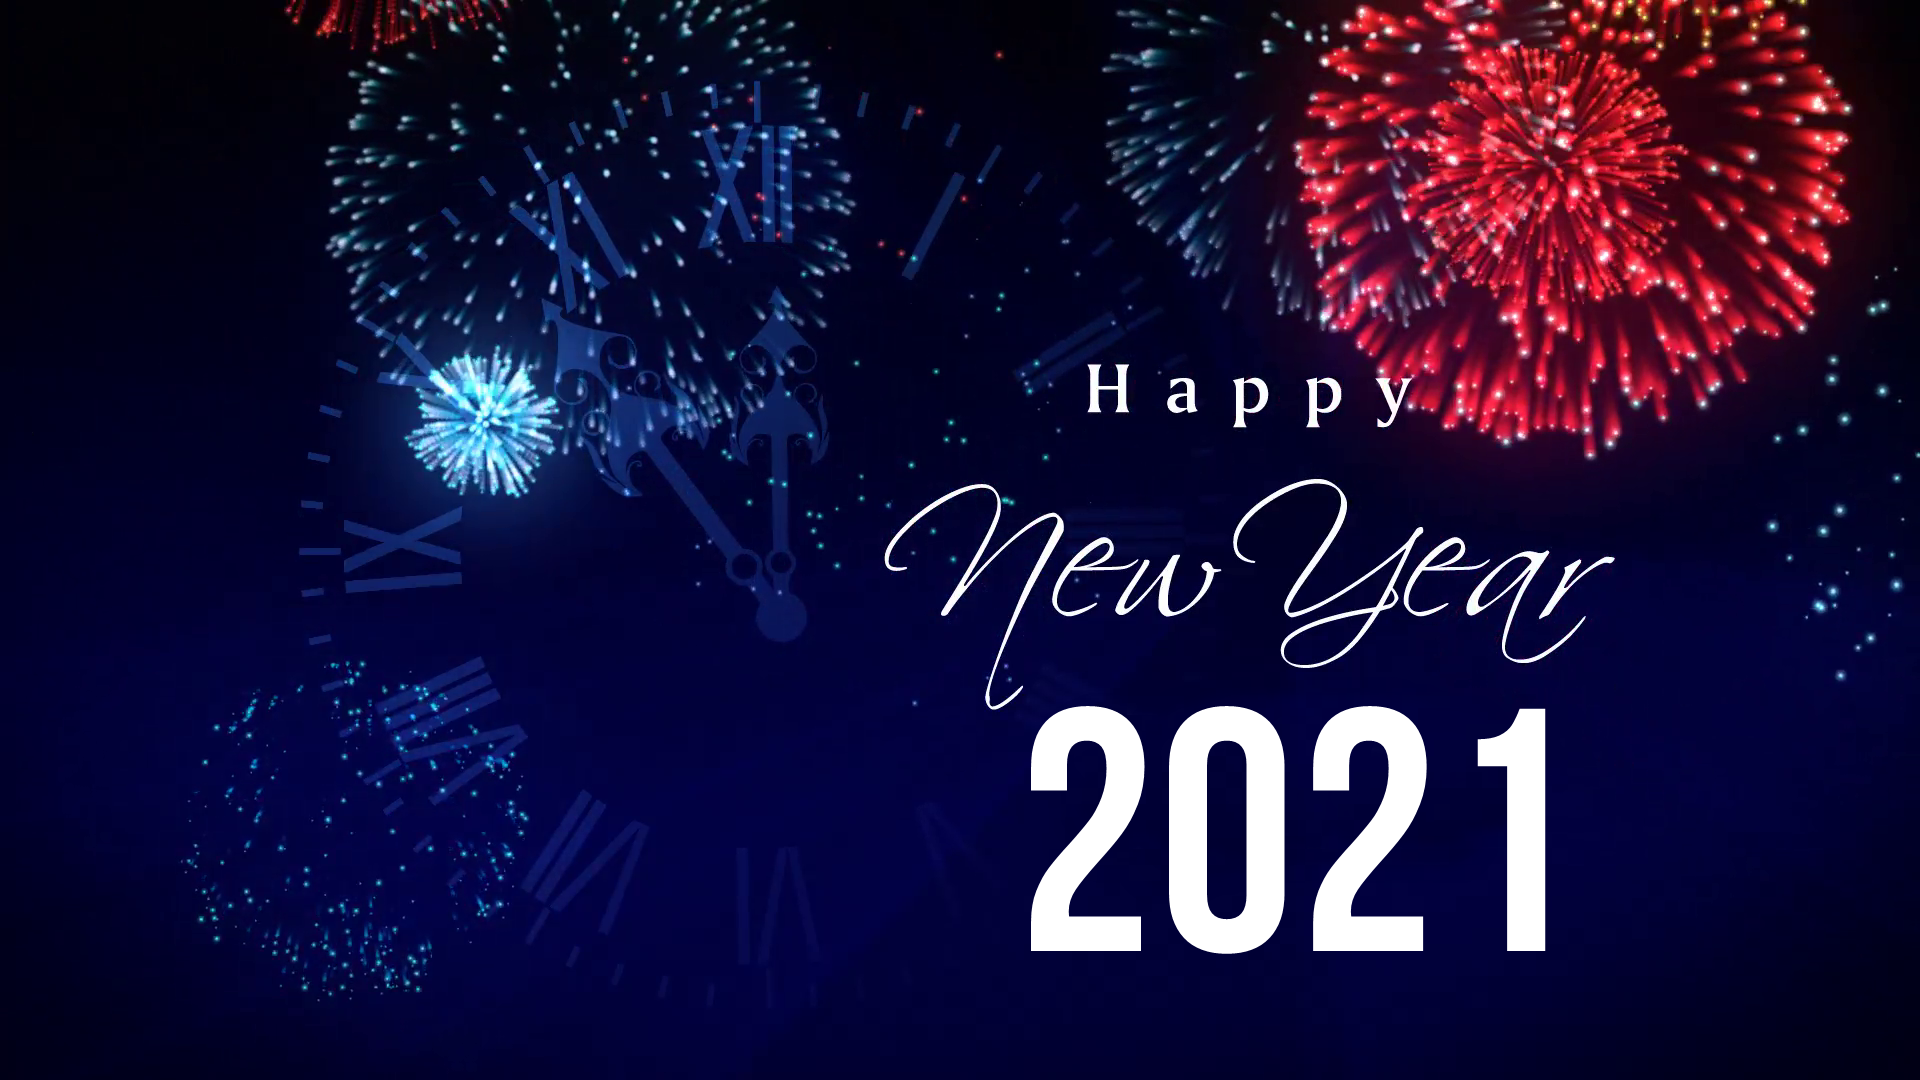 Happy New Year 2021 1920x1080 Wallpapers Wallpaper Cave